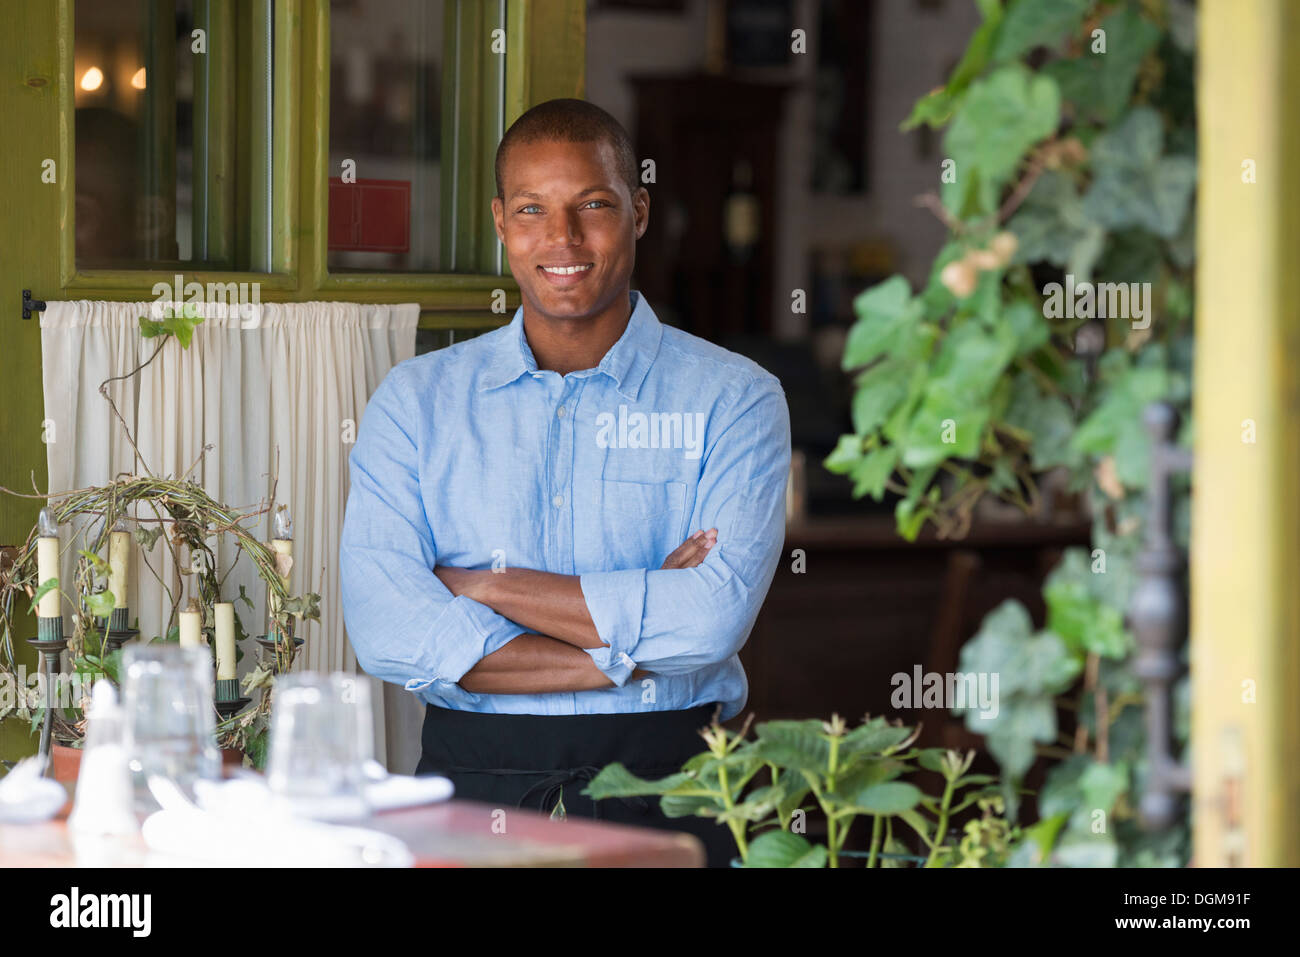 A man standing by the open window of a cafe or bistro, looking out with arms folded. - Stock Image